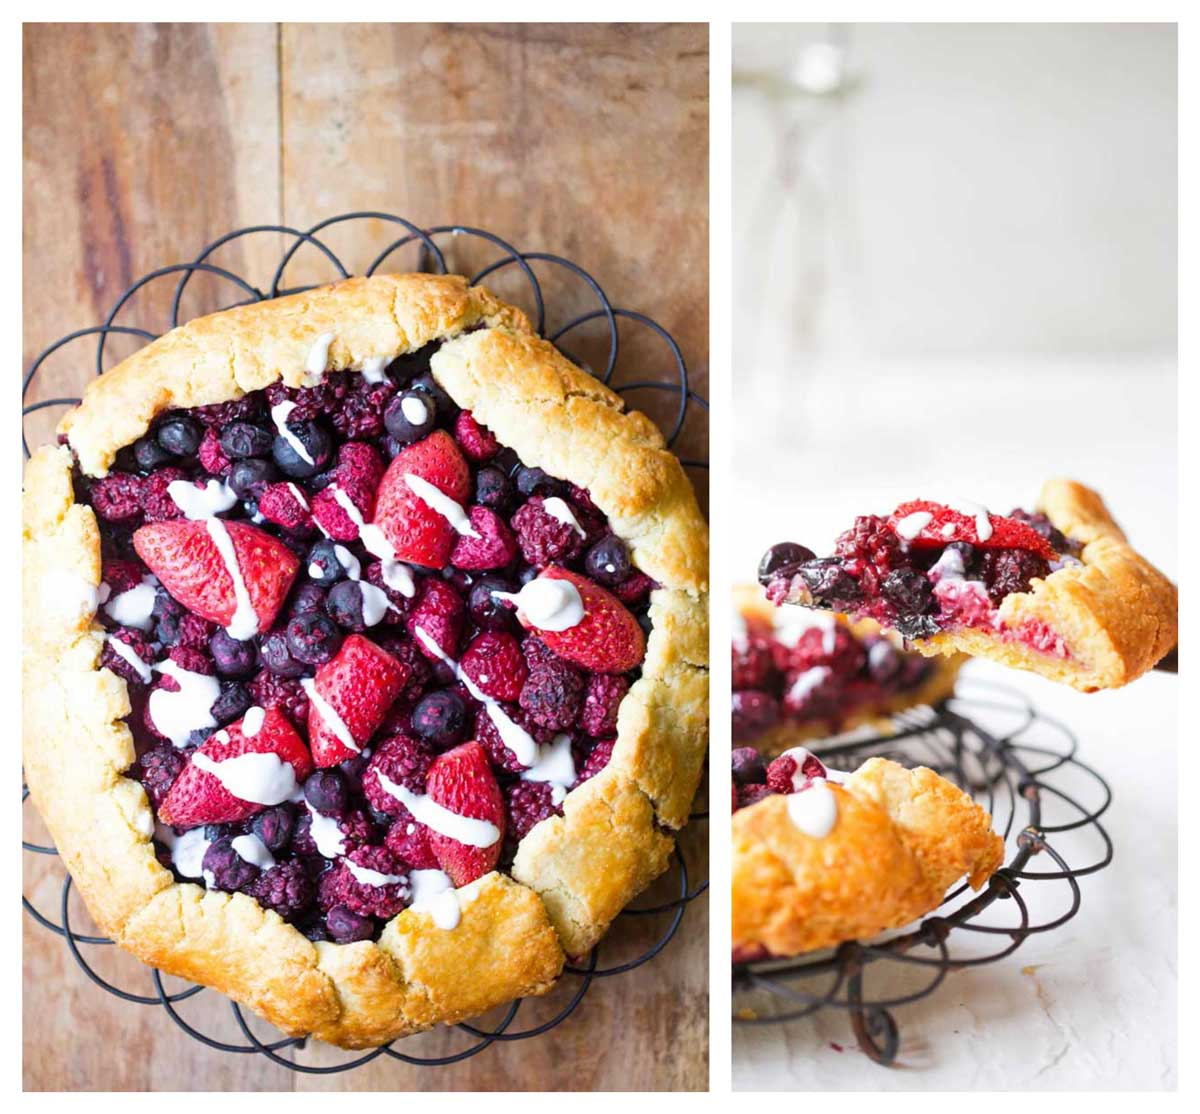 Berries and Galette with a slice on a cutter